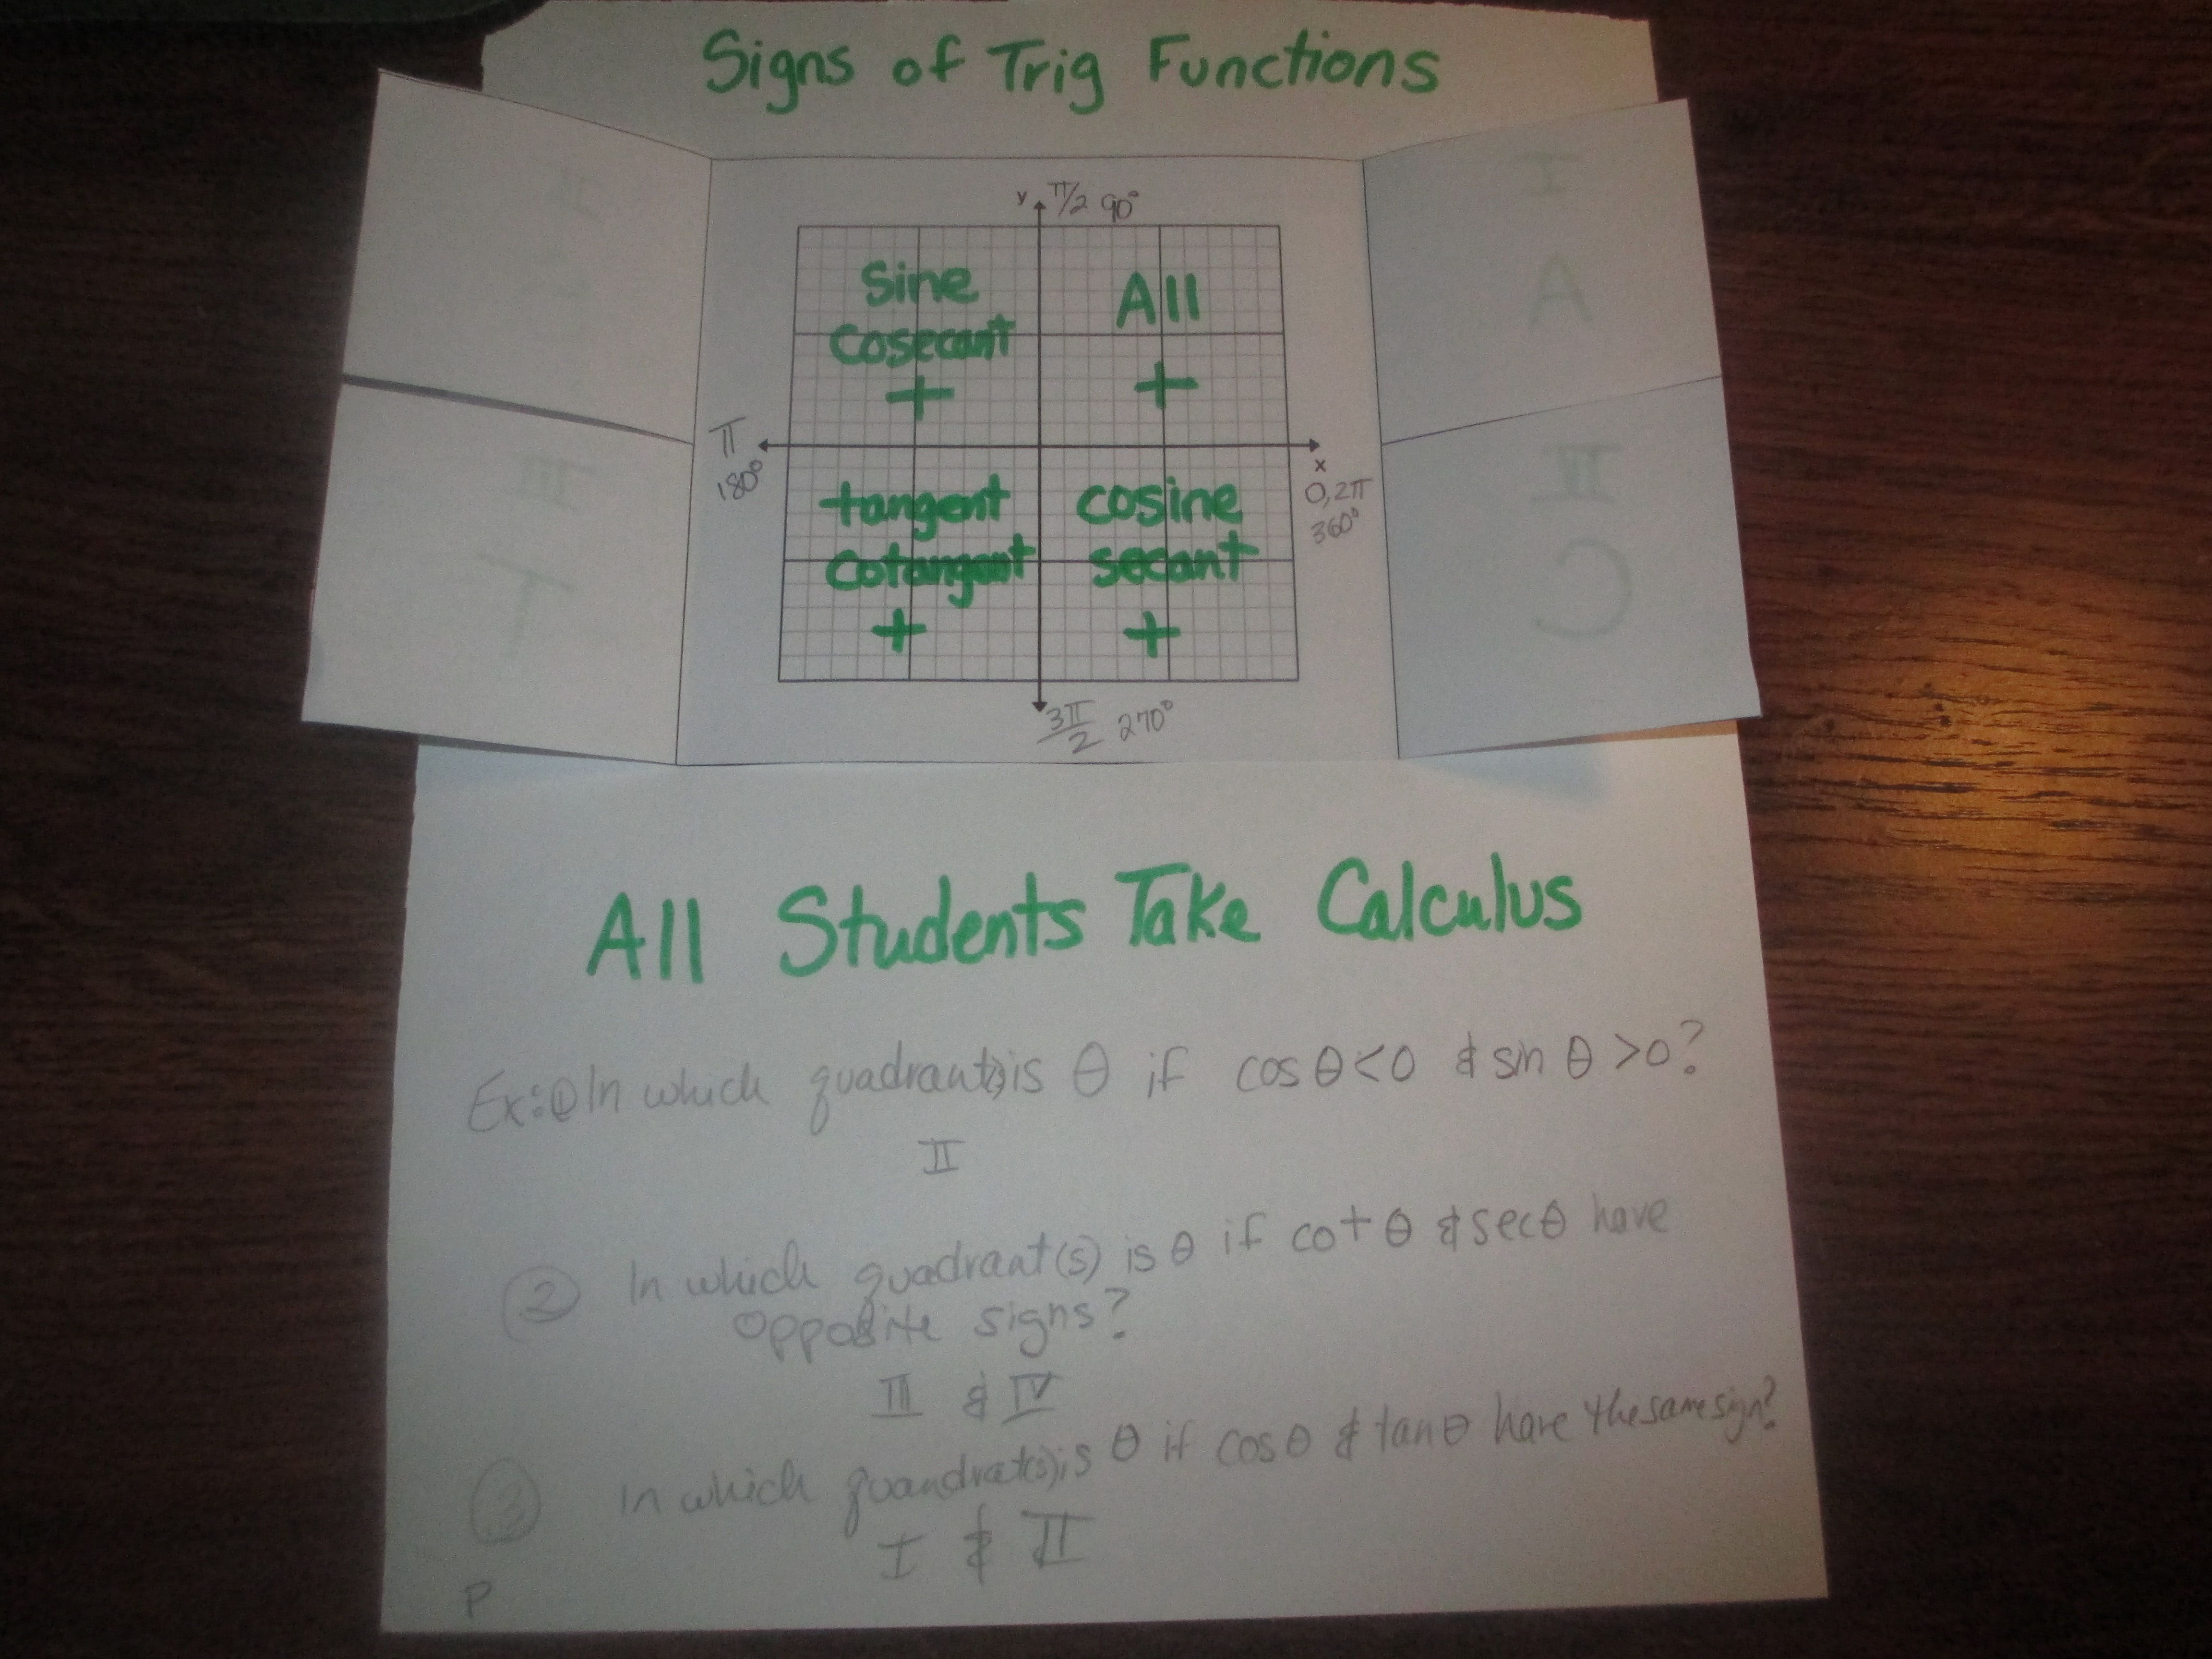 signs for trigonometric functions all students take calculus